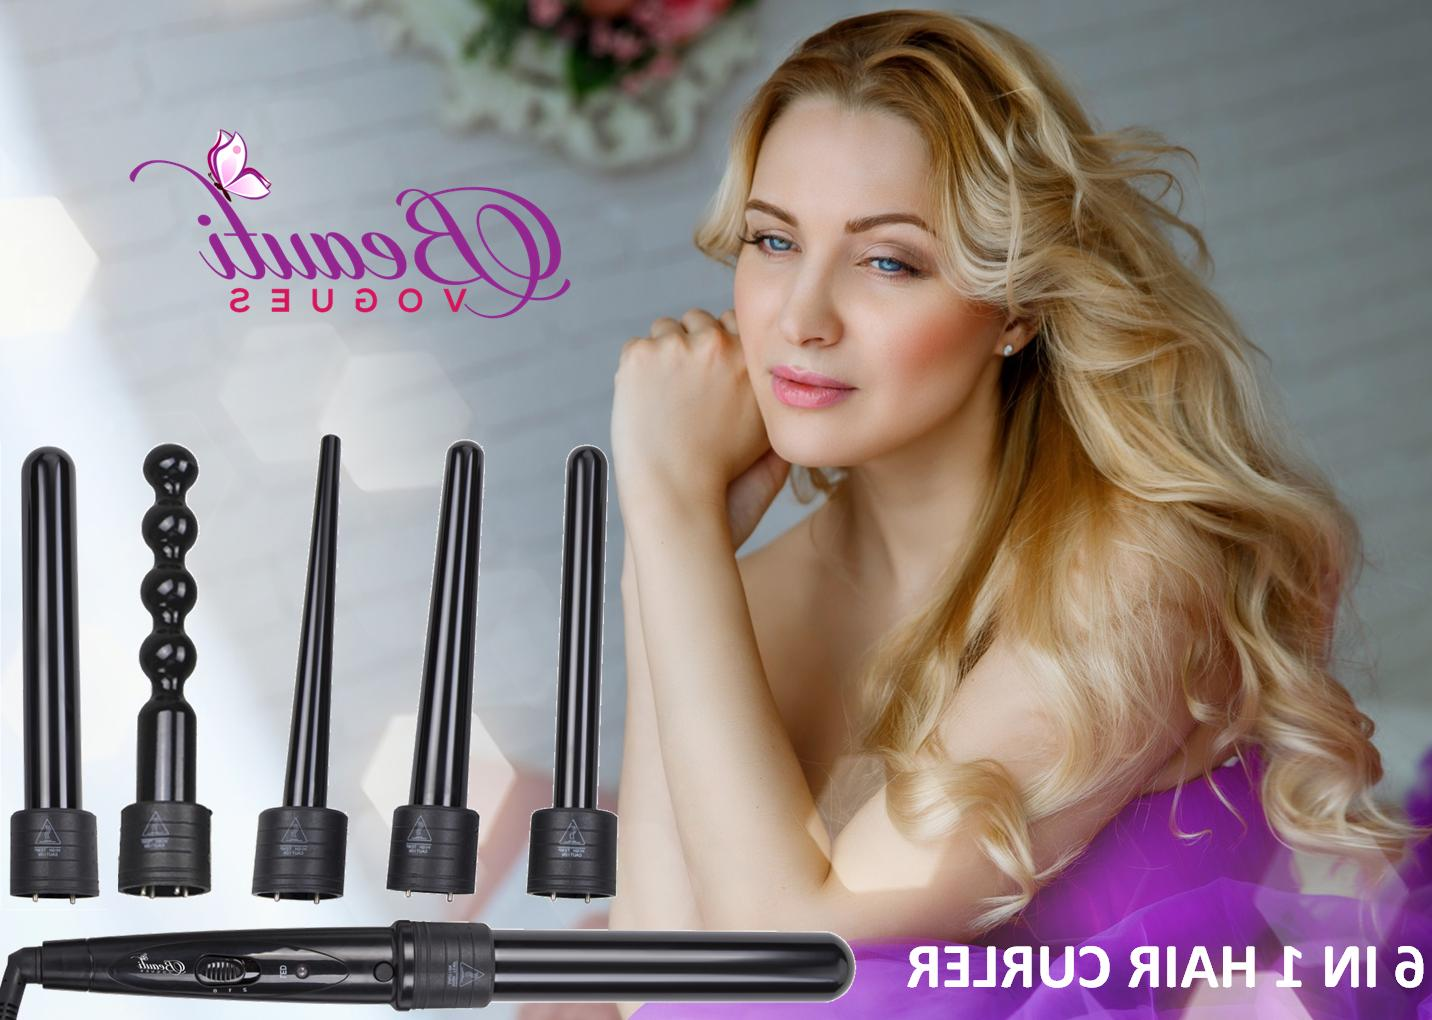 6 in 1 Ceramic Hair Curler Interchangeable Iron Curling Wand Set +